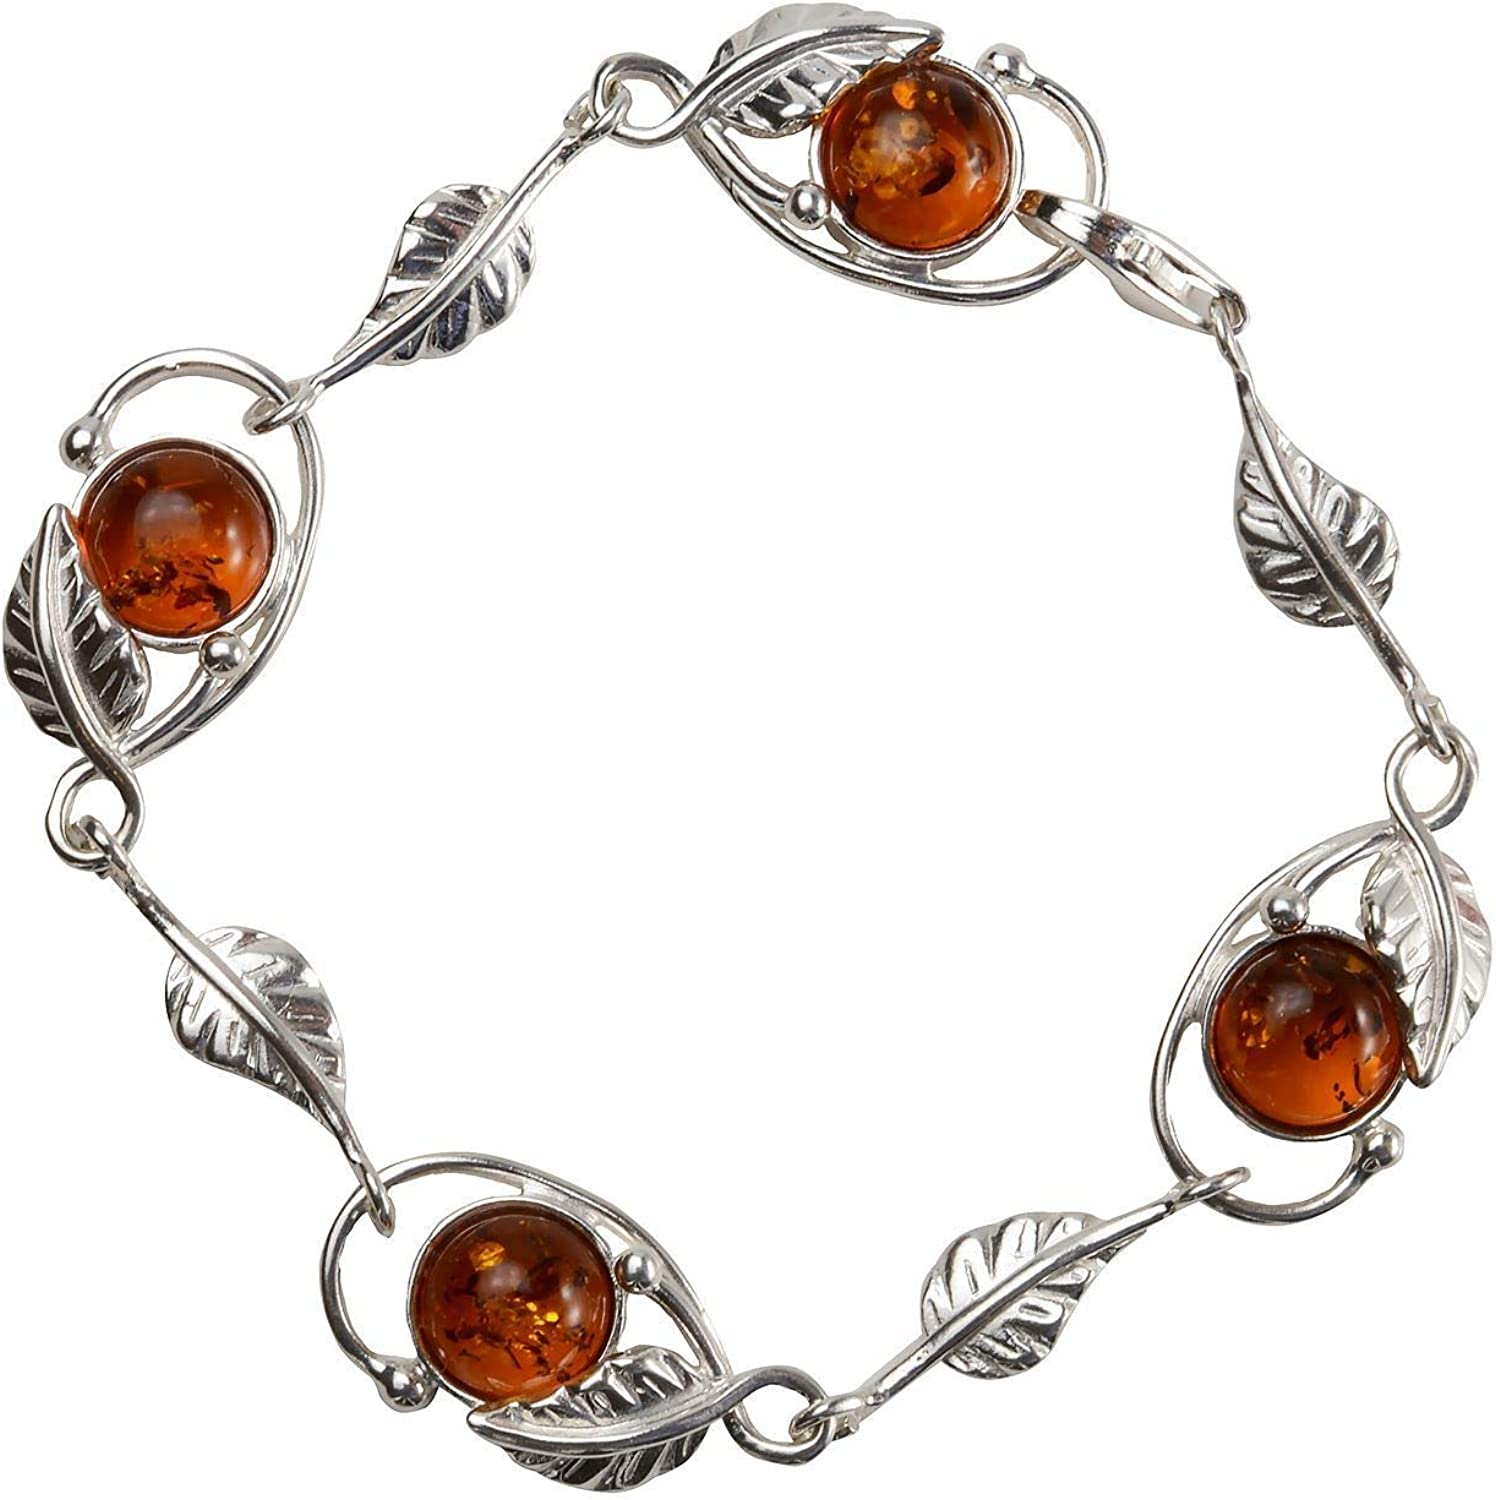 Necklace 925 Sterling Silver /& Baltic Amber Teddy Bear Necklace